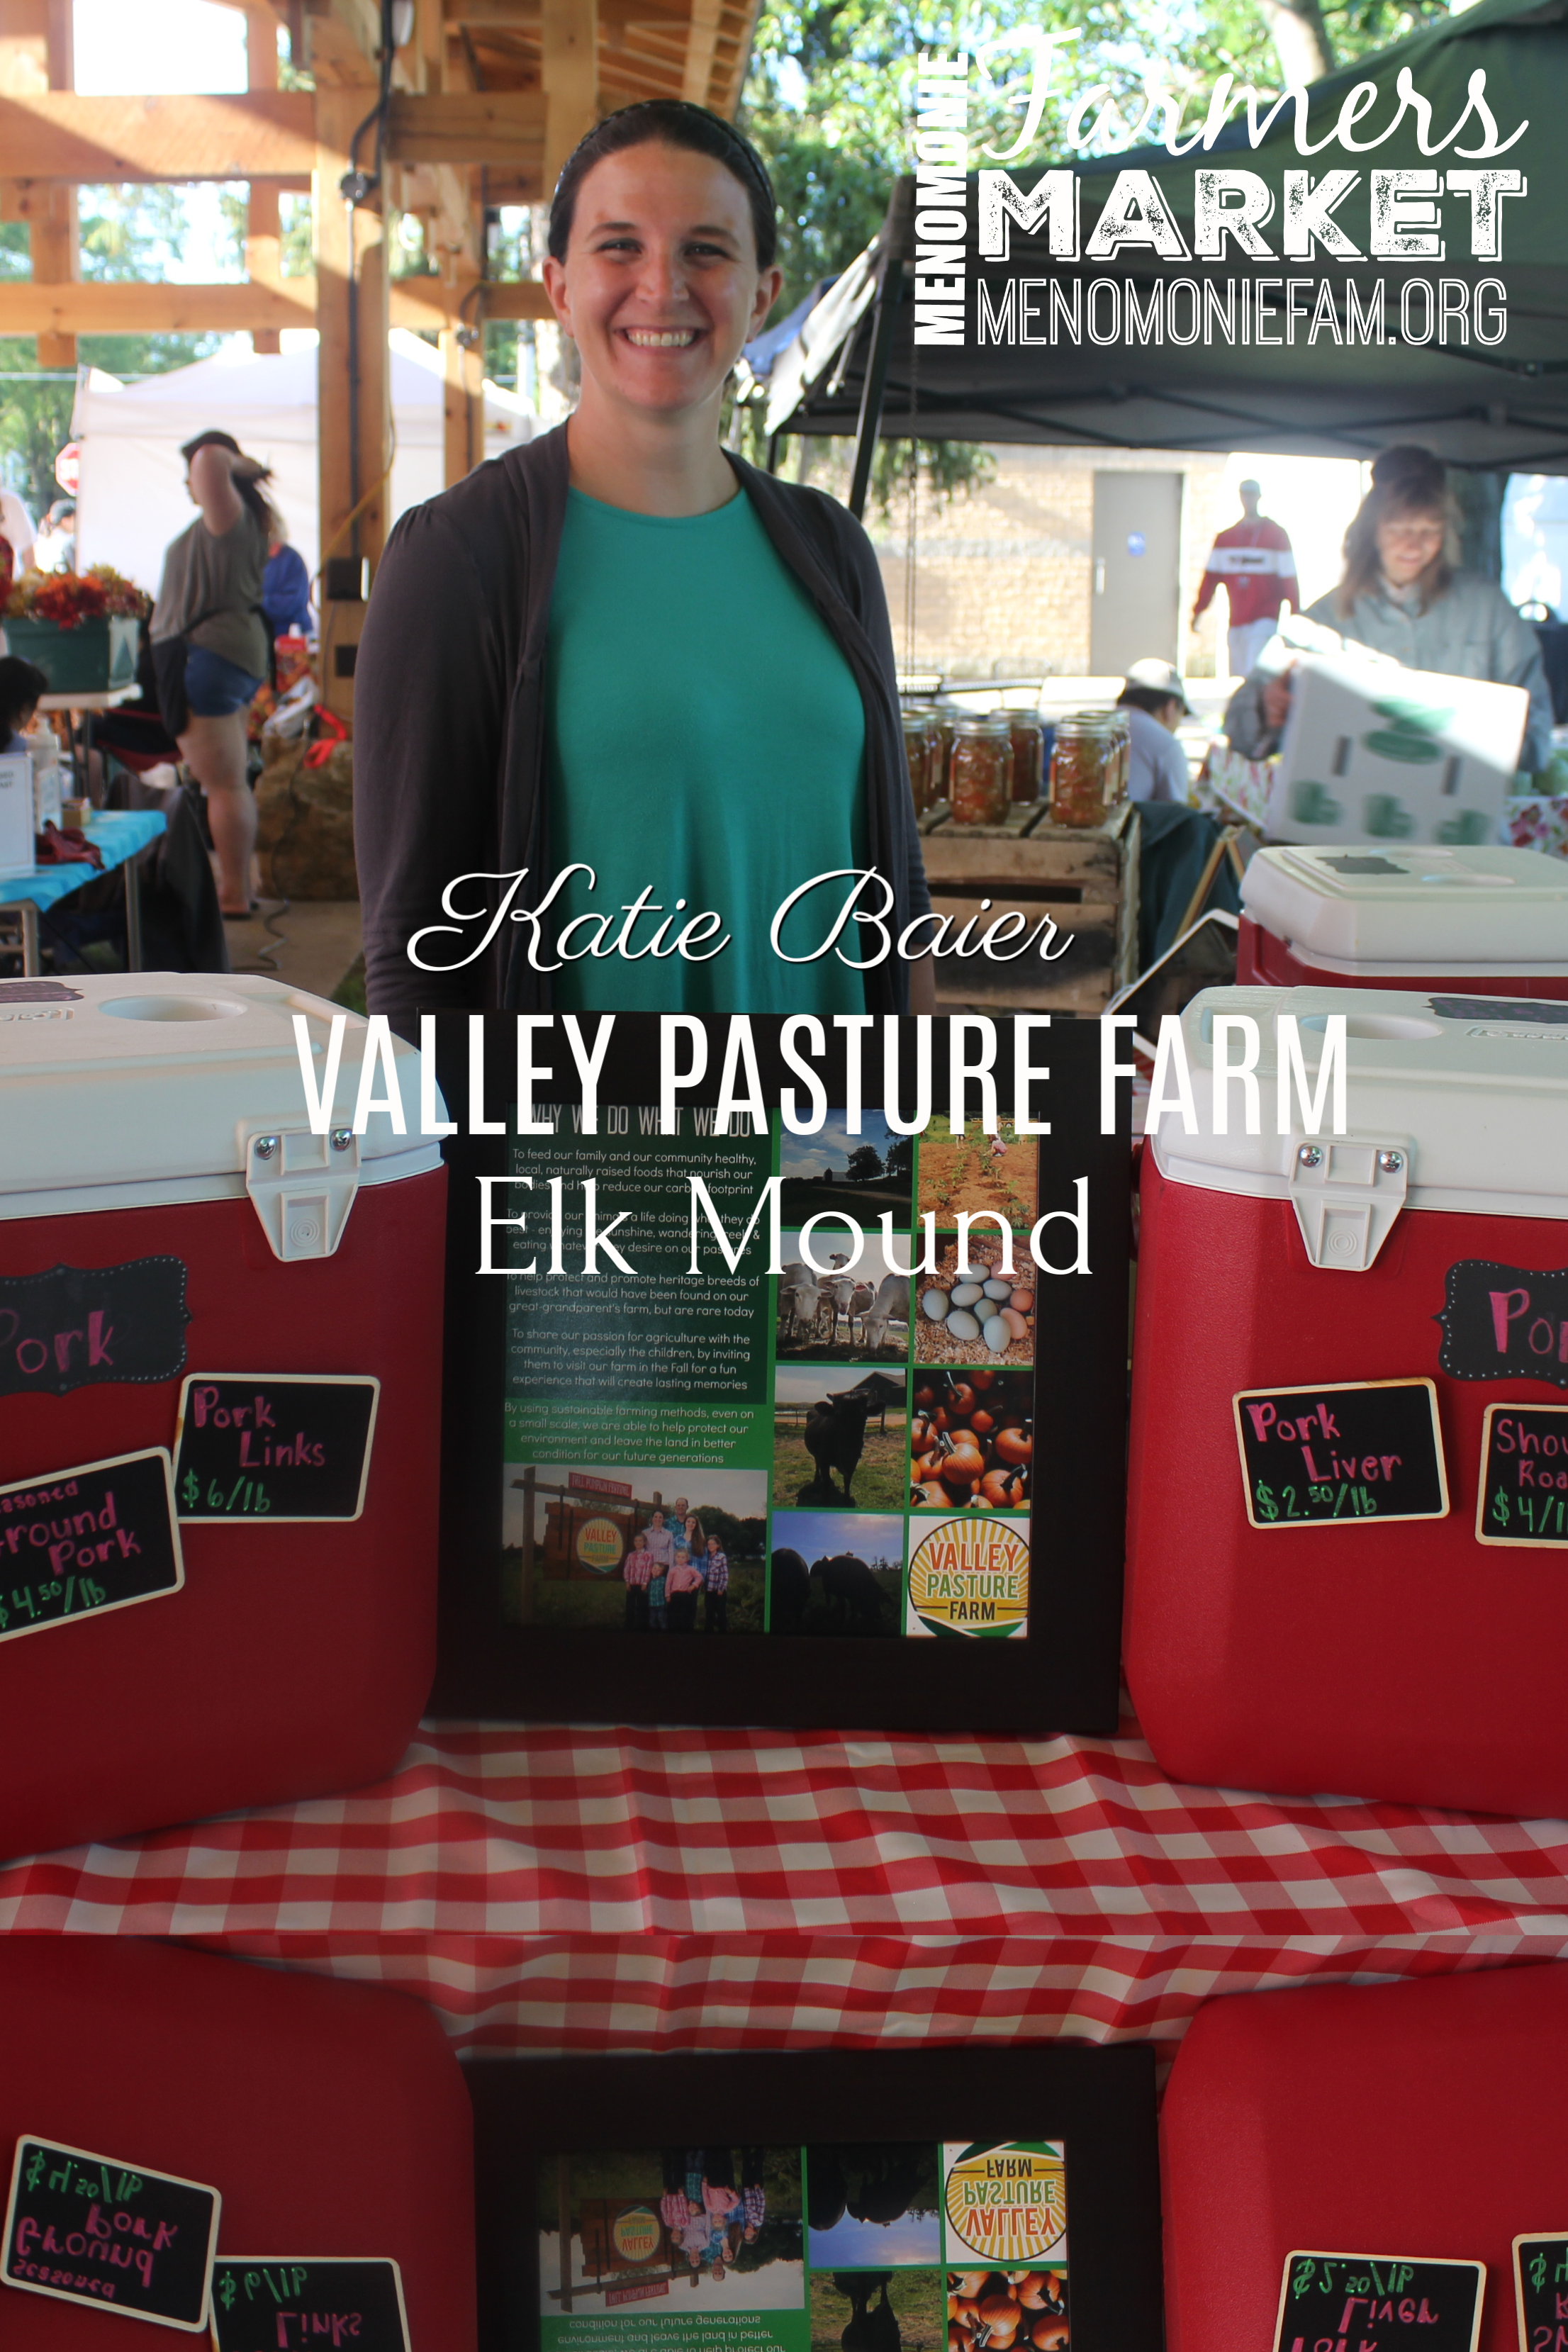 Valley Pasture Farm